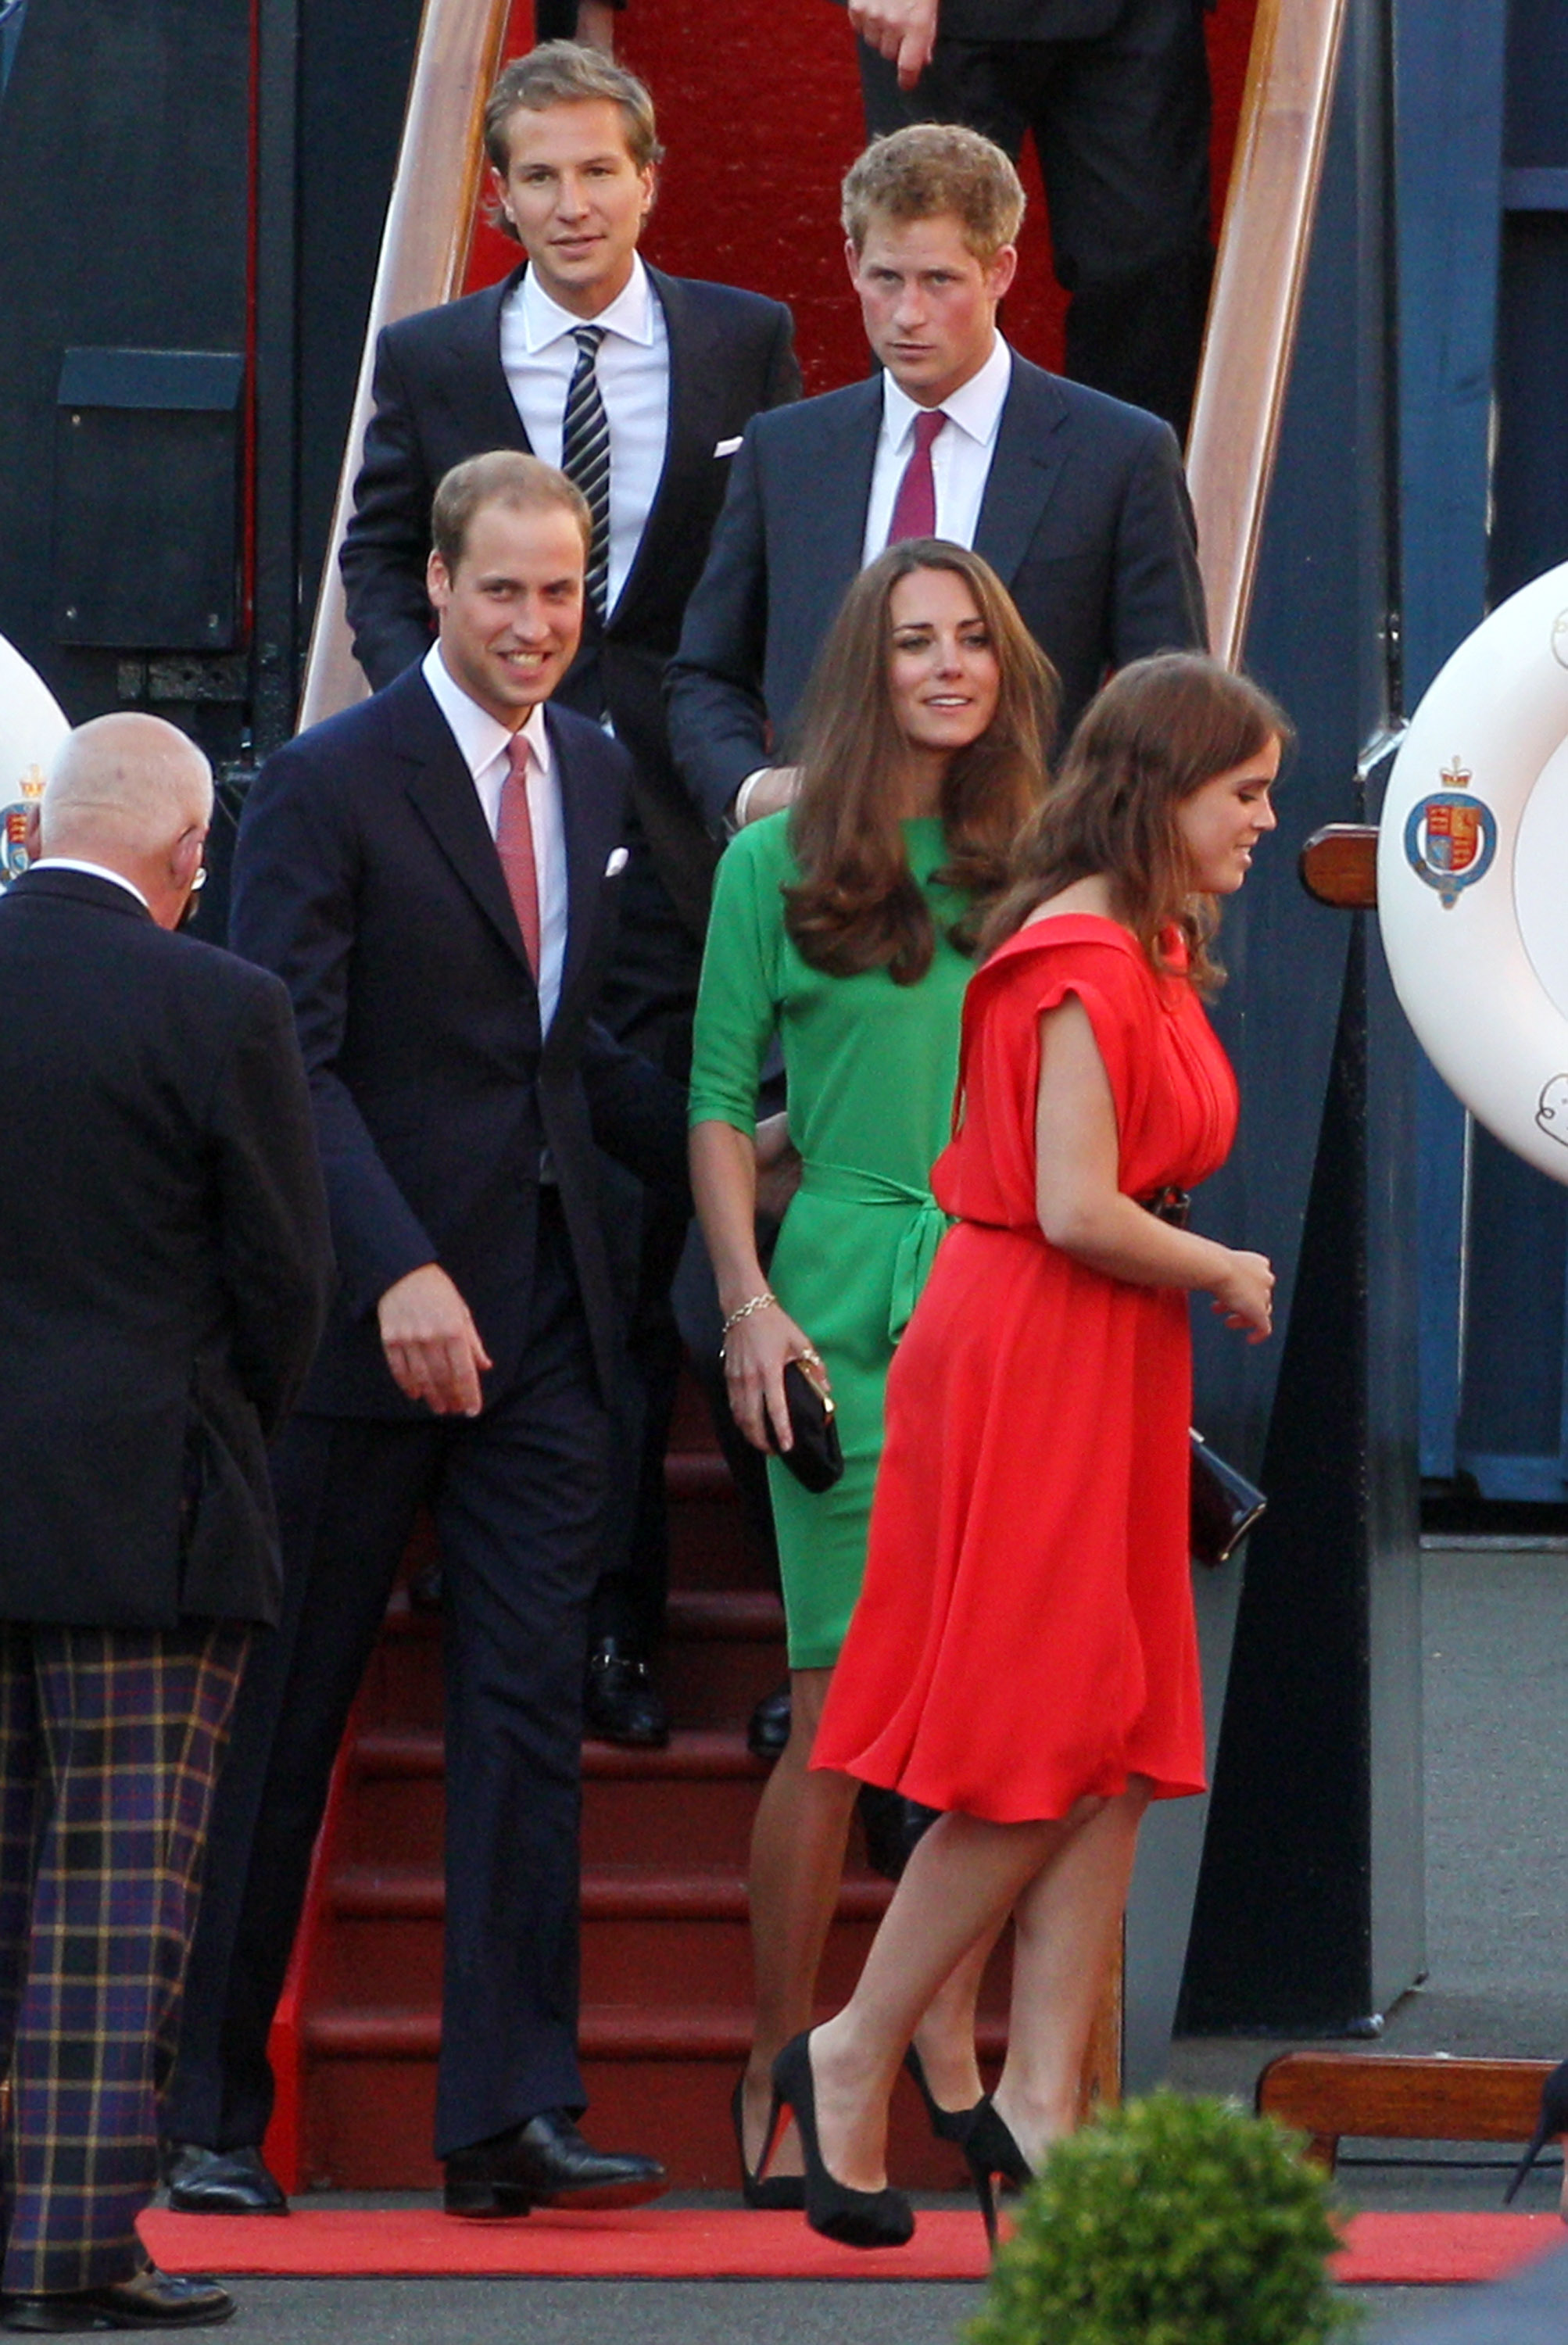 Dave Clark, Prince Harry, Prince William, Kate Middleton, and Princess Eugenie leave Mike and Zara's wedding drinks.